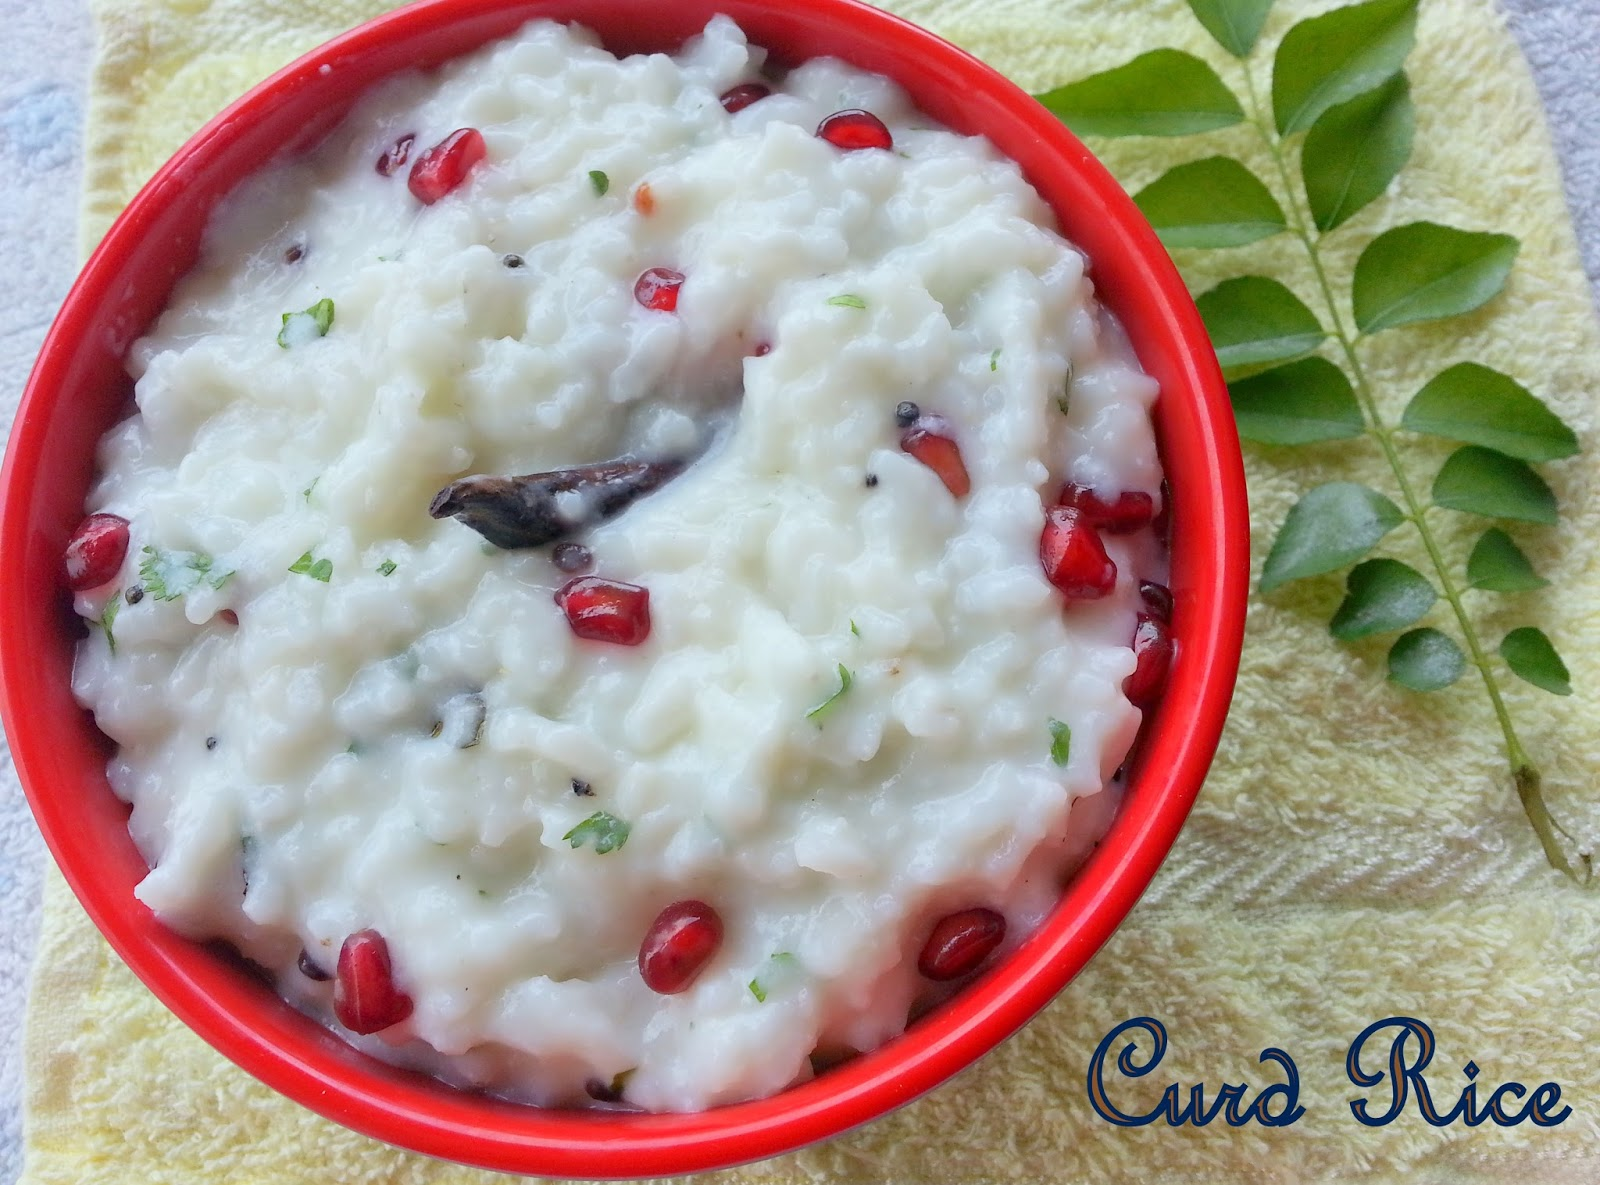 Annapurna curd rice thayir sadam south indian yogurt rice if you are looking for more rice dishes do check my following post soybean chunk fried rice pineapple fried rice sweet coconut rice vegetarian nasi forumfinder Images